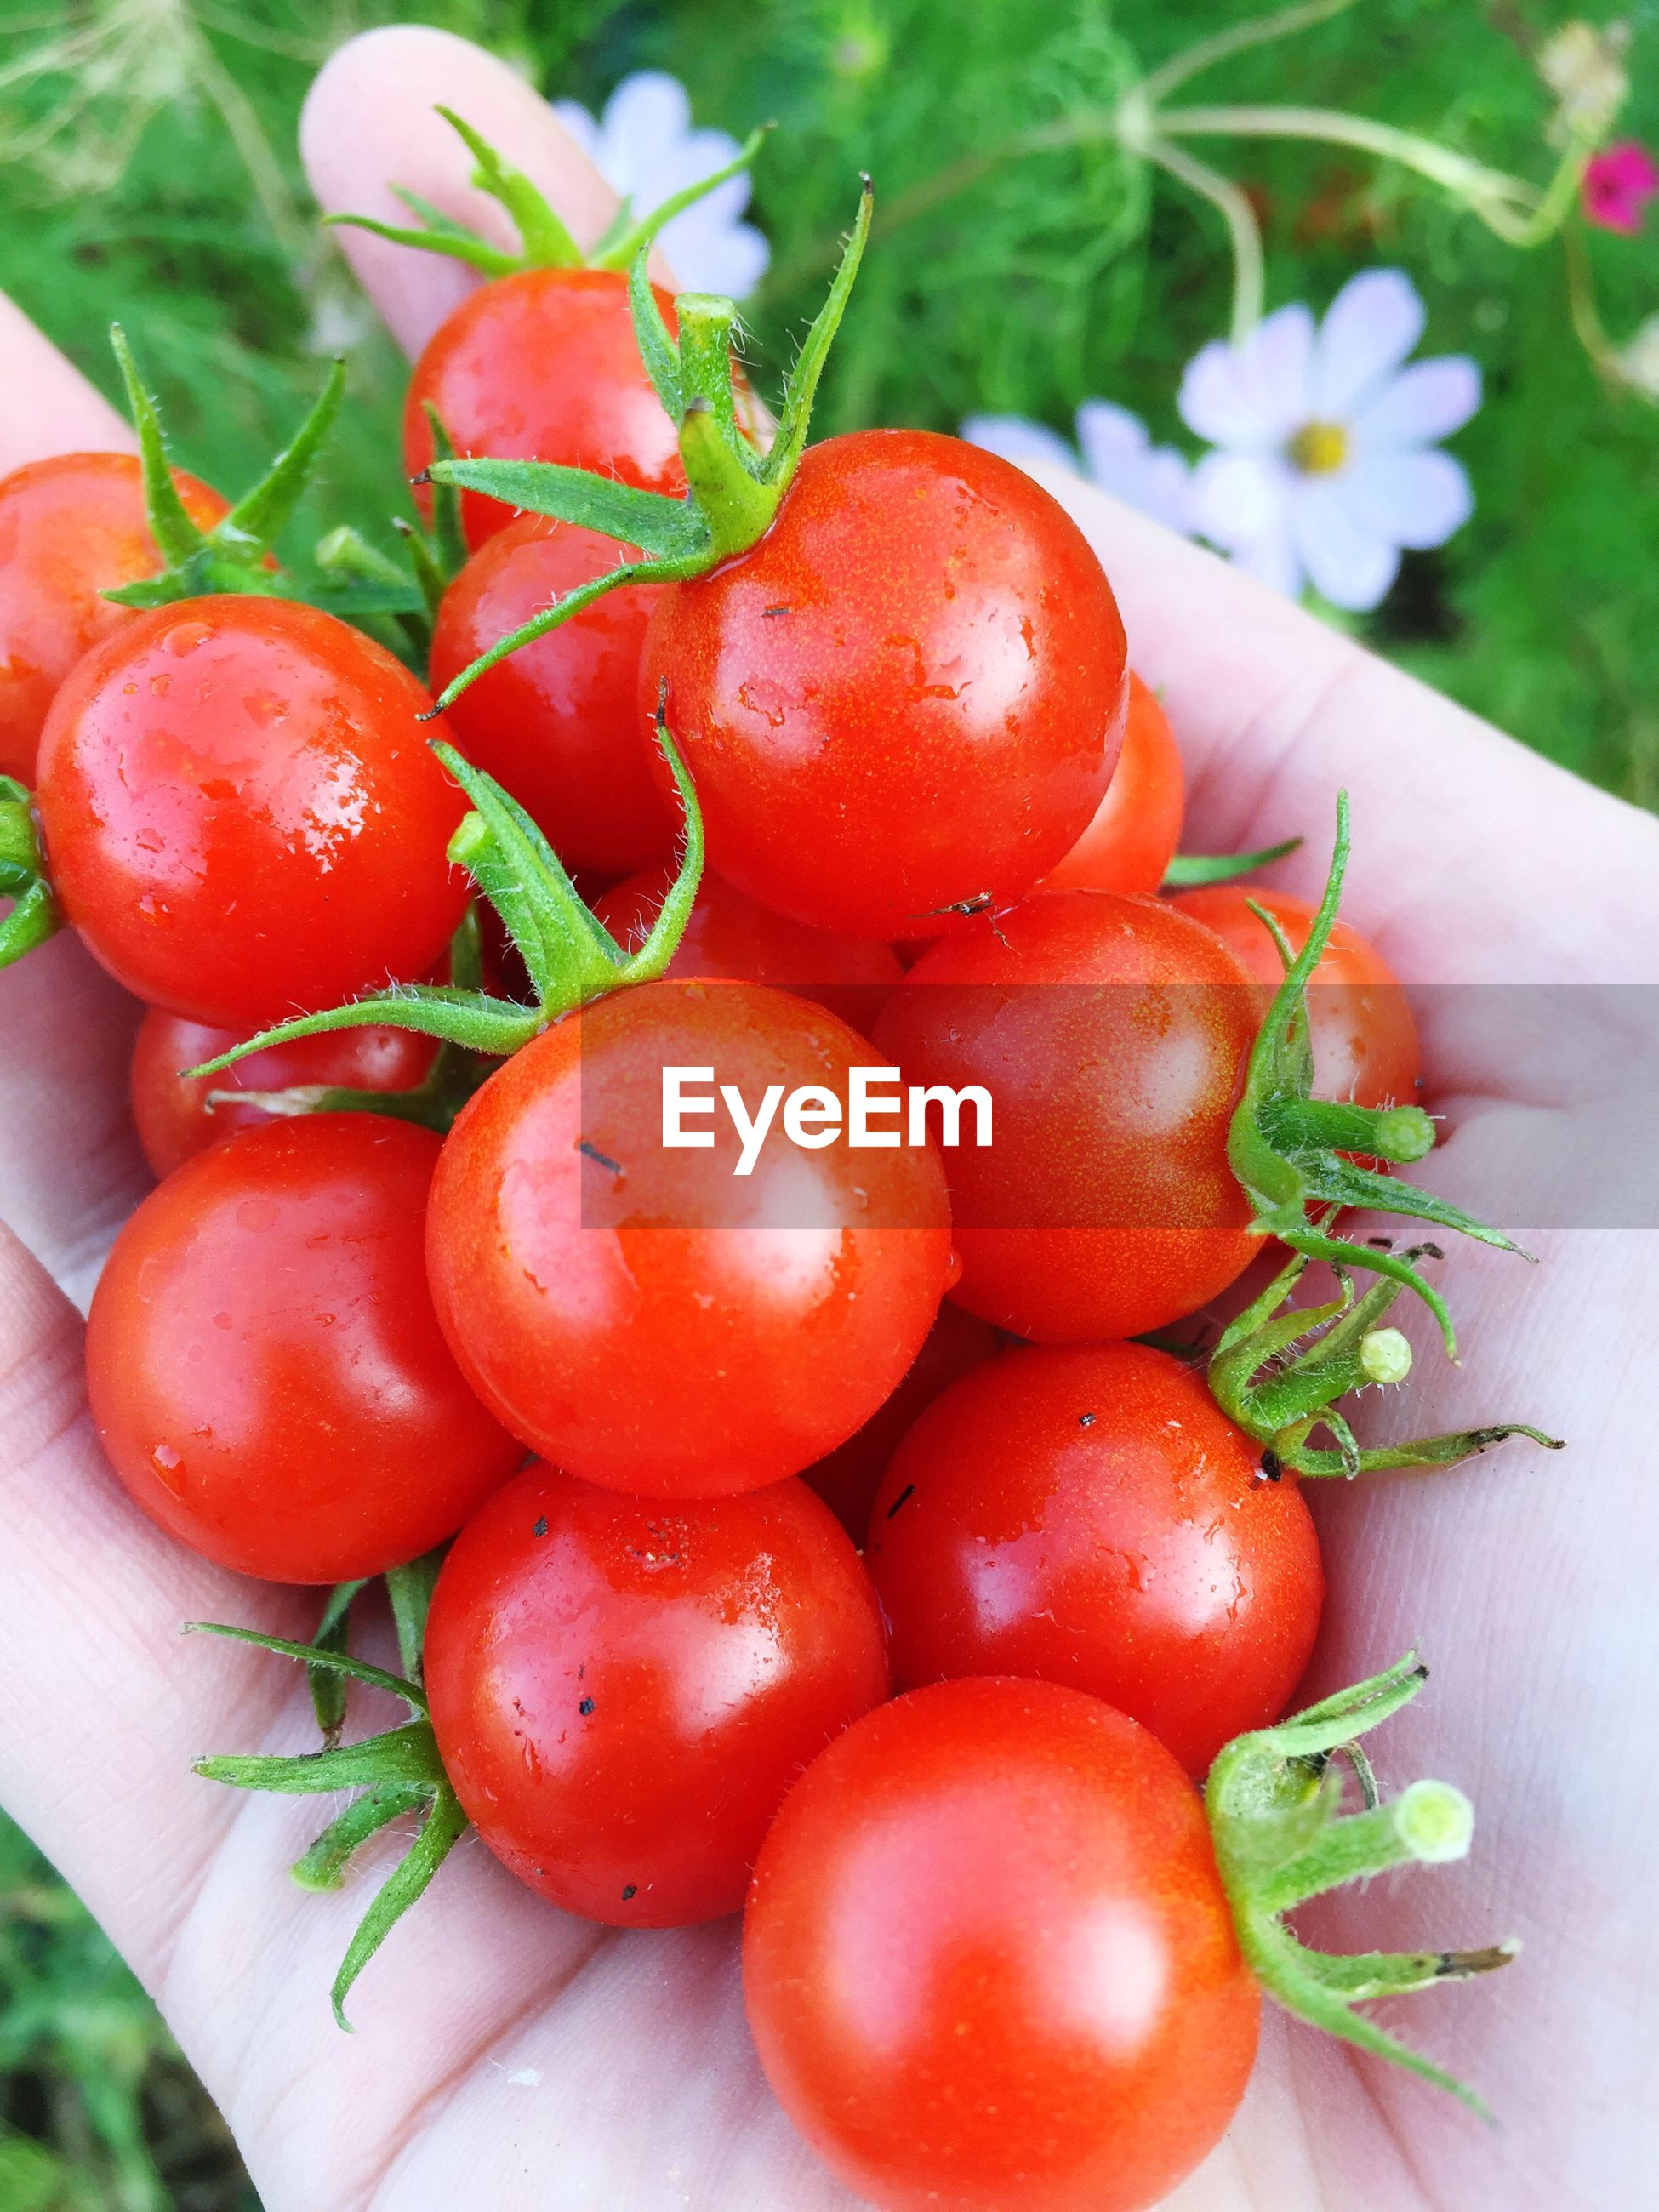 HIGH ANGLE VIEW OF TOMATOES WITH VEGETABLES